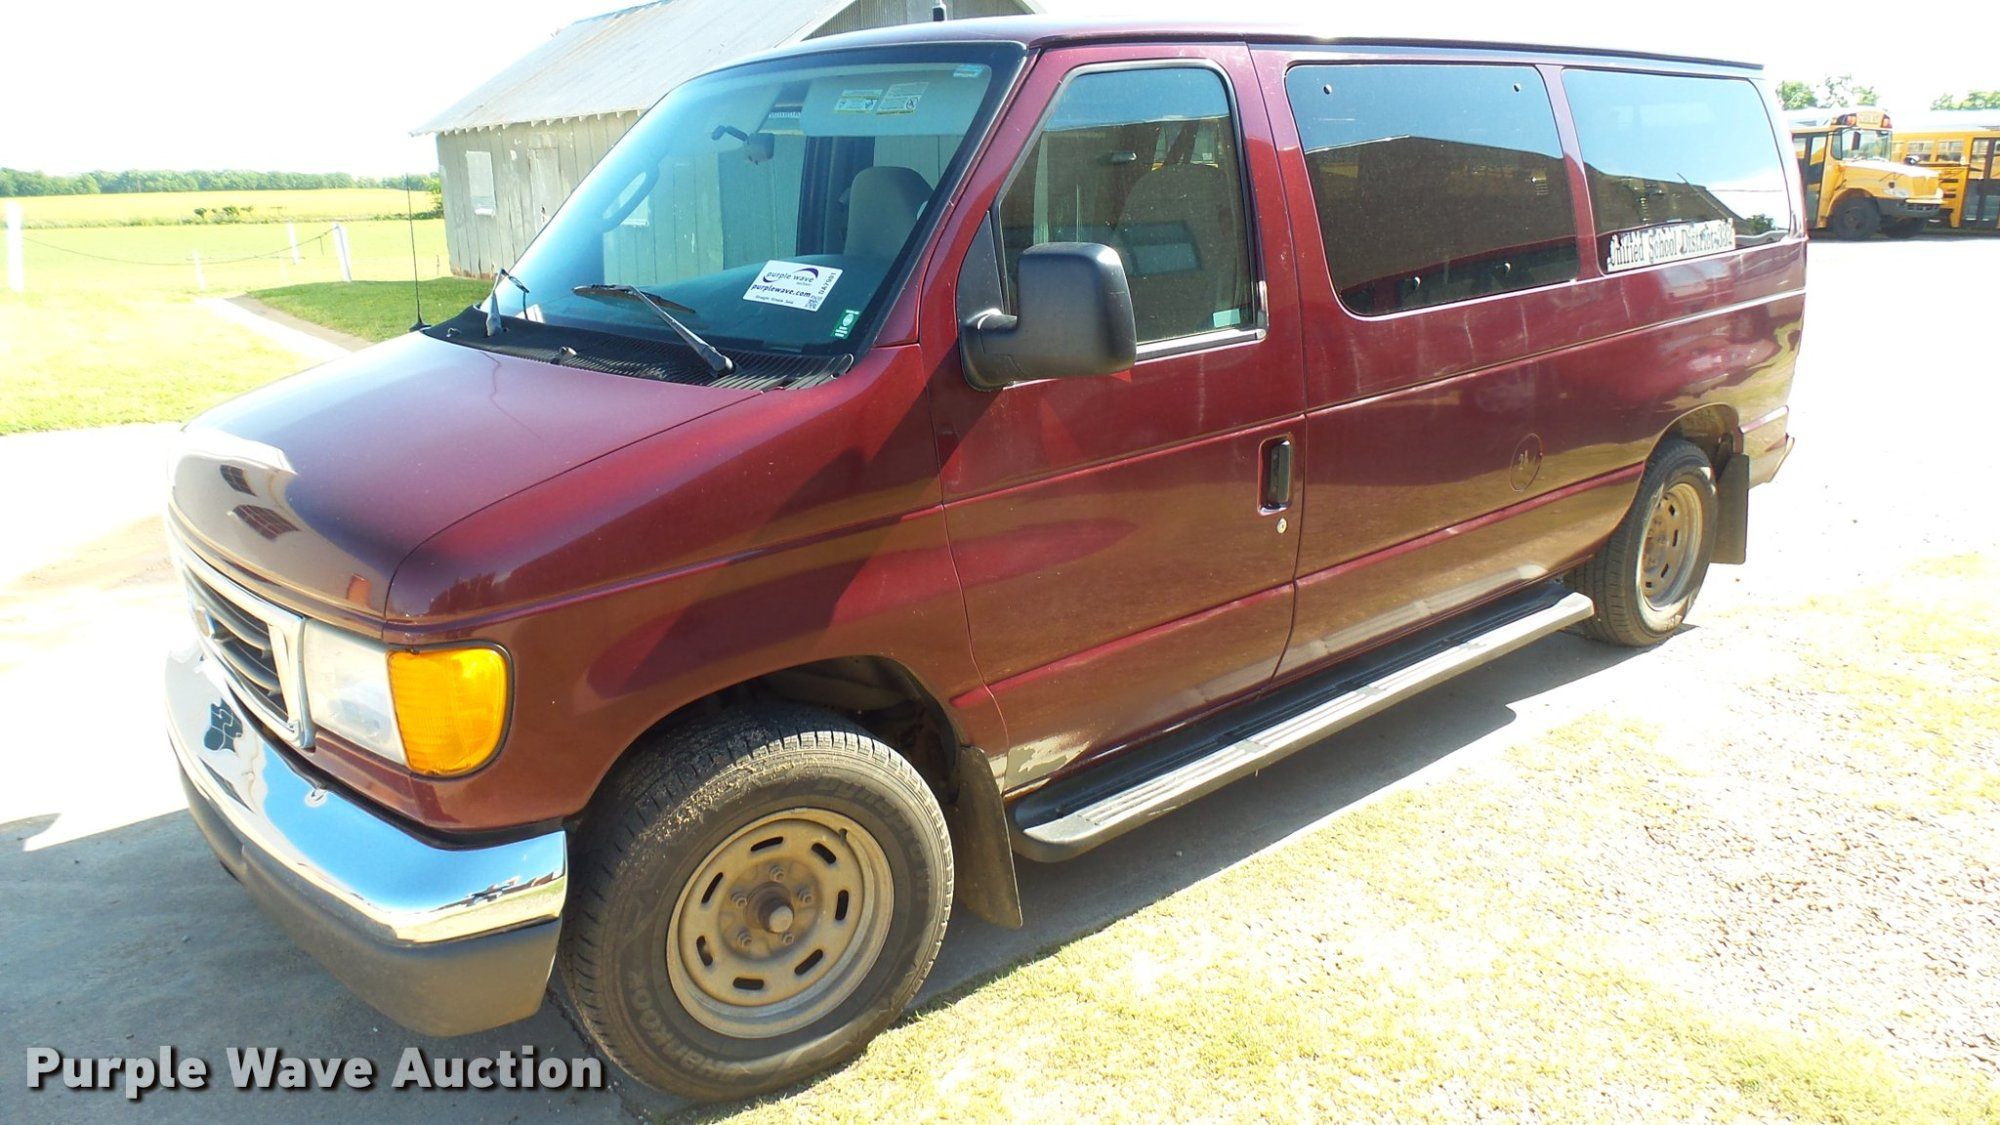 hight resolution of da7901 image for item da7901 2006 ford econoline e150 van